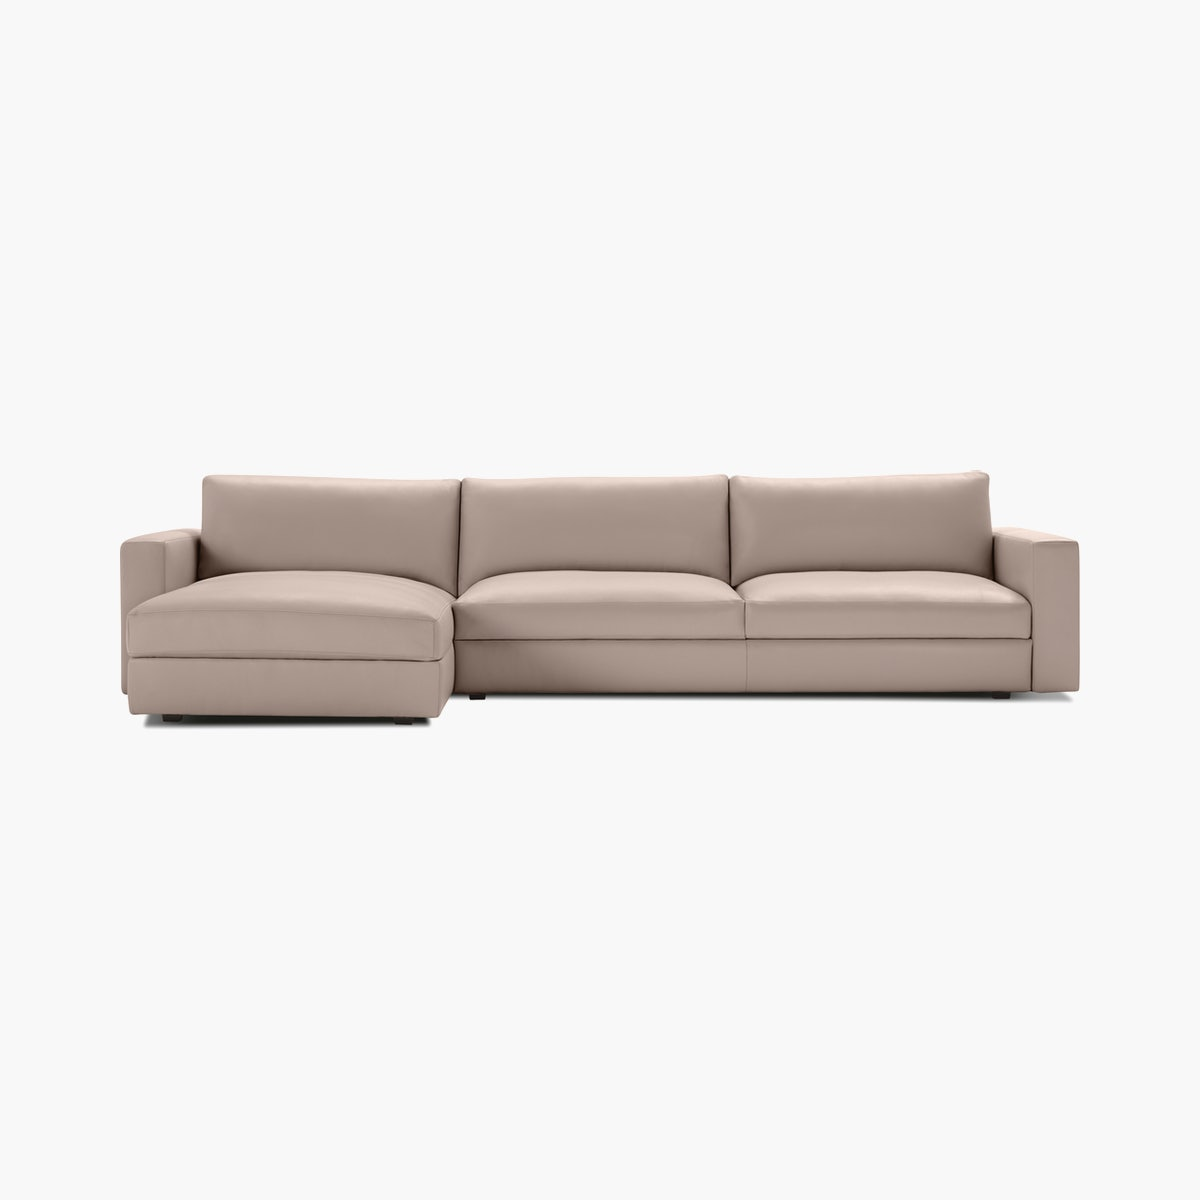 Reid Sleeper Sectional with Storage